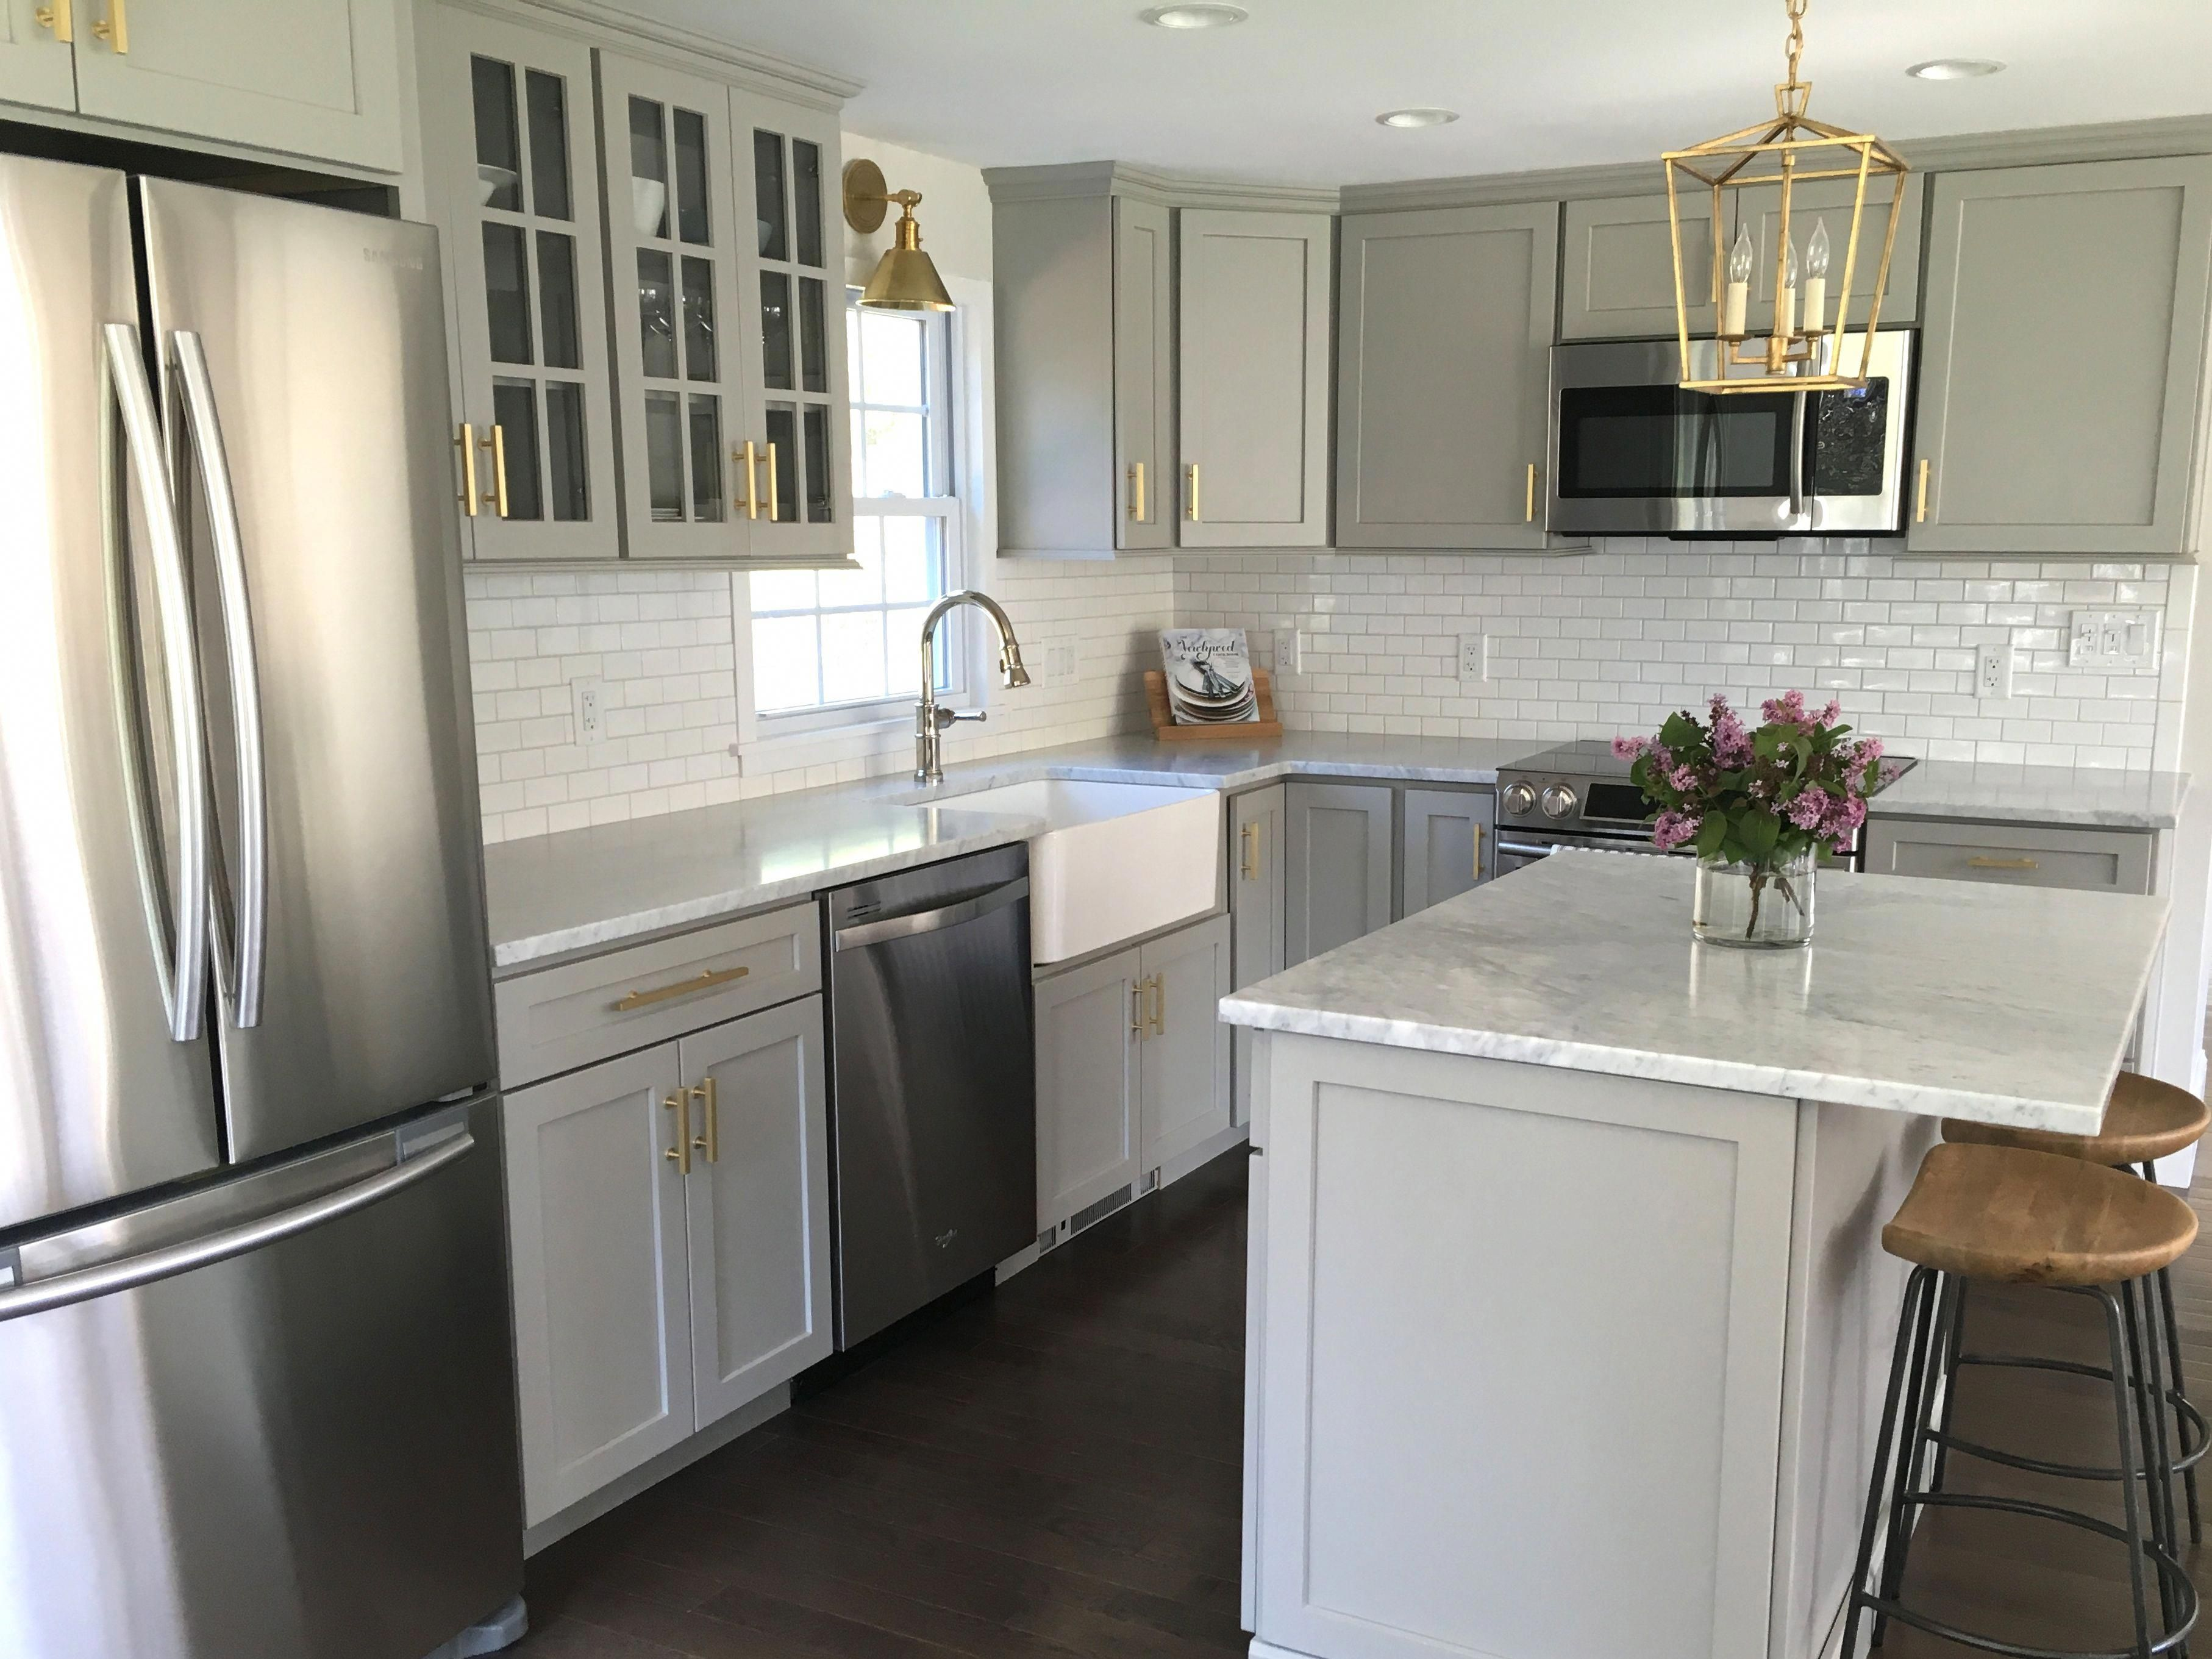 Sensitive Contacted Simple Kitchen Remodel Tis The Season Donate Now Home Kitchens Kitchen Remodel Kitchen Design